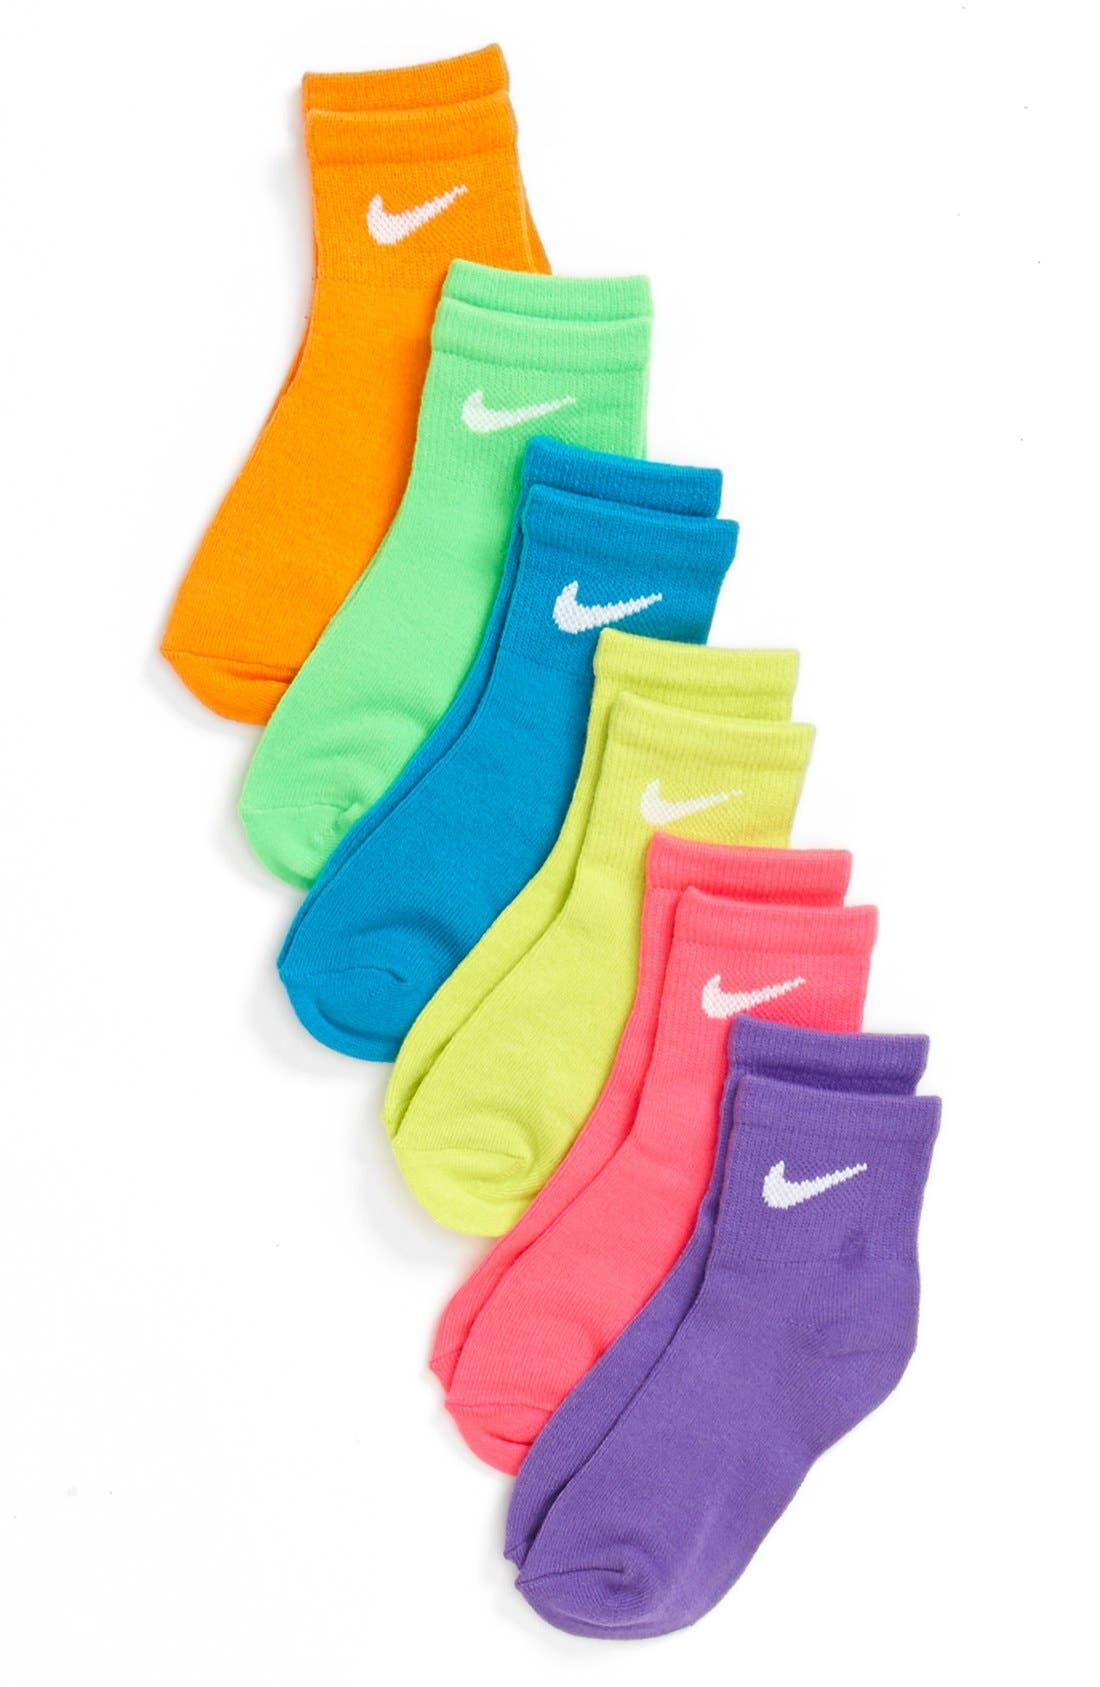 Main Image - Nike 'Neon' Low Cut Socks (6-Pack) (Toddler Girls & Little Girls)